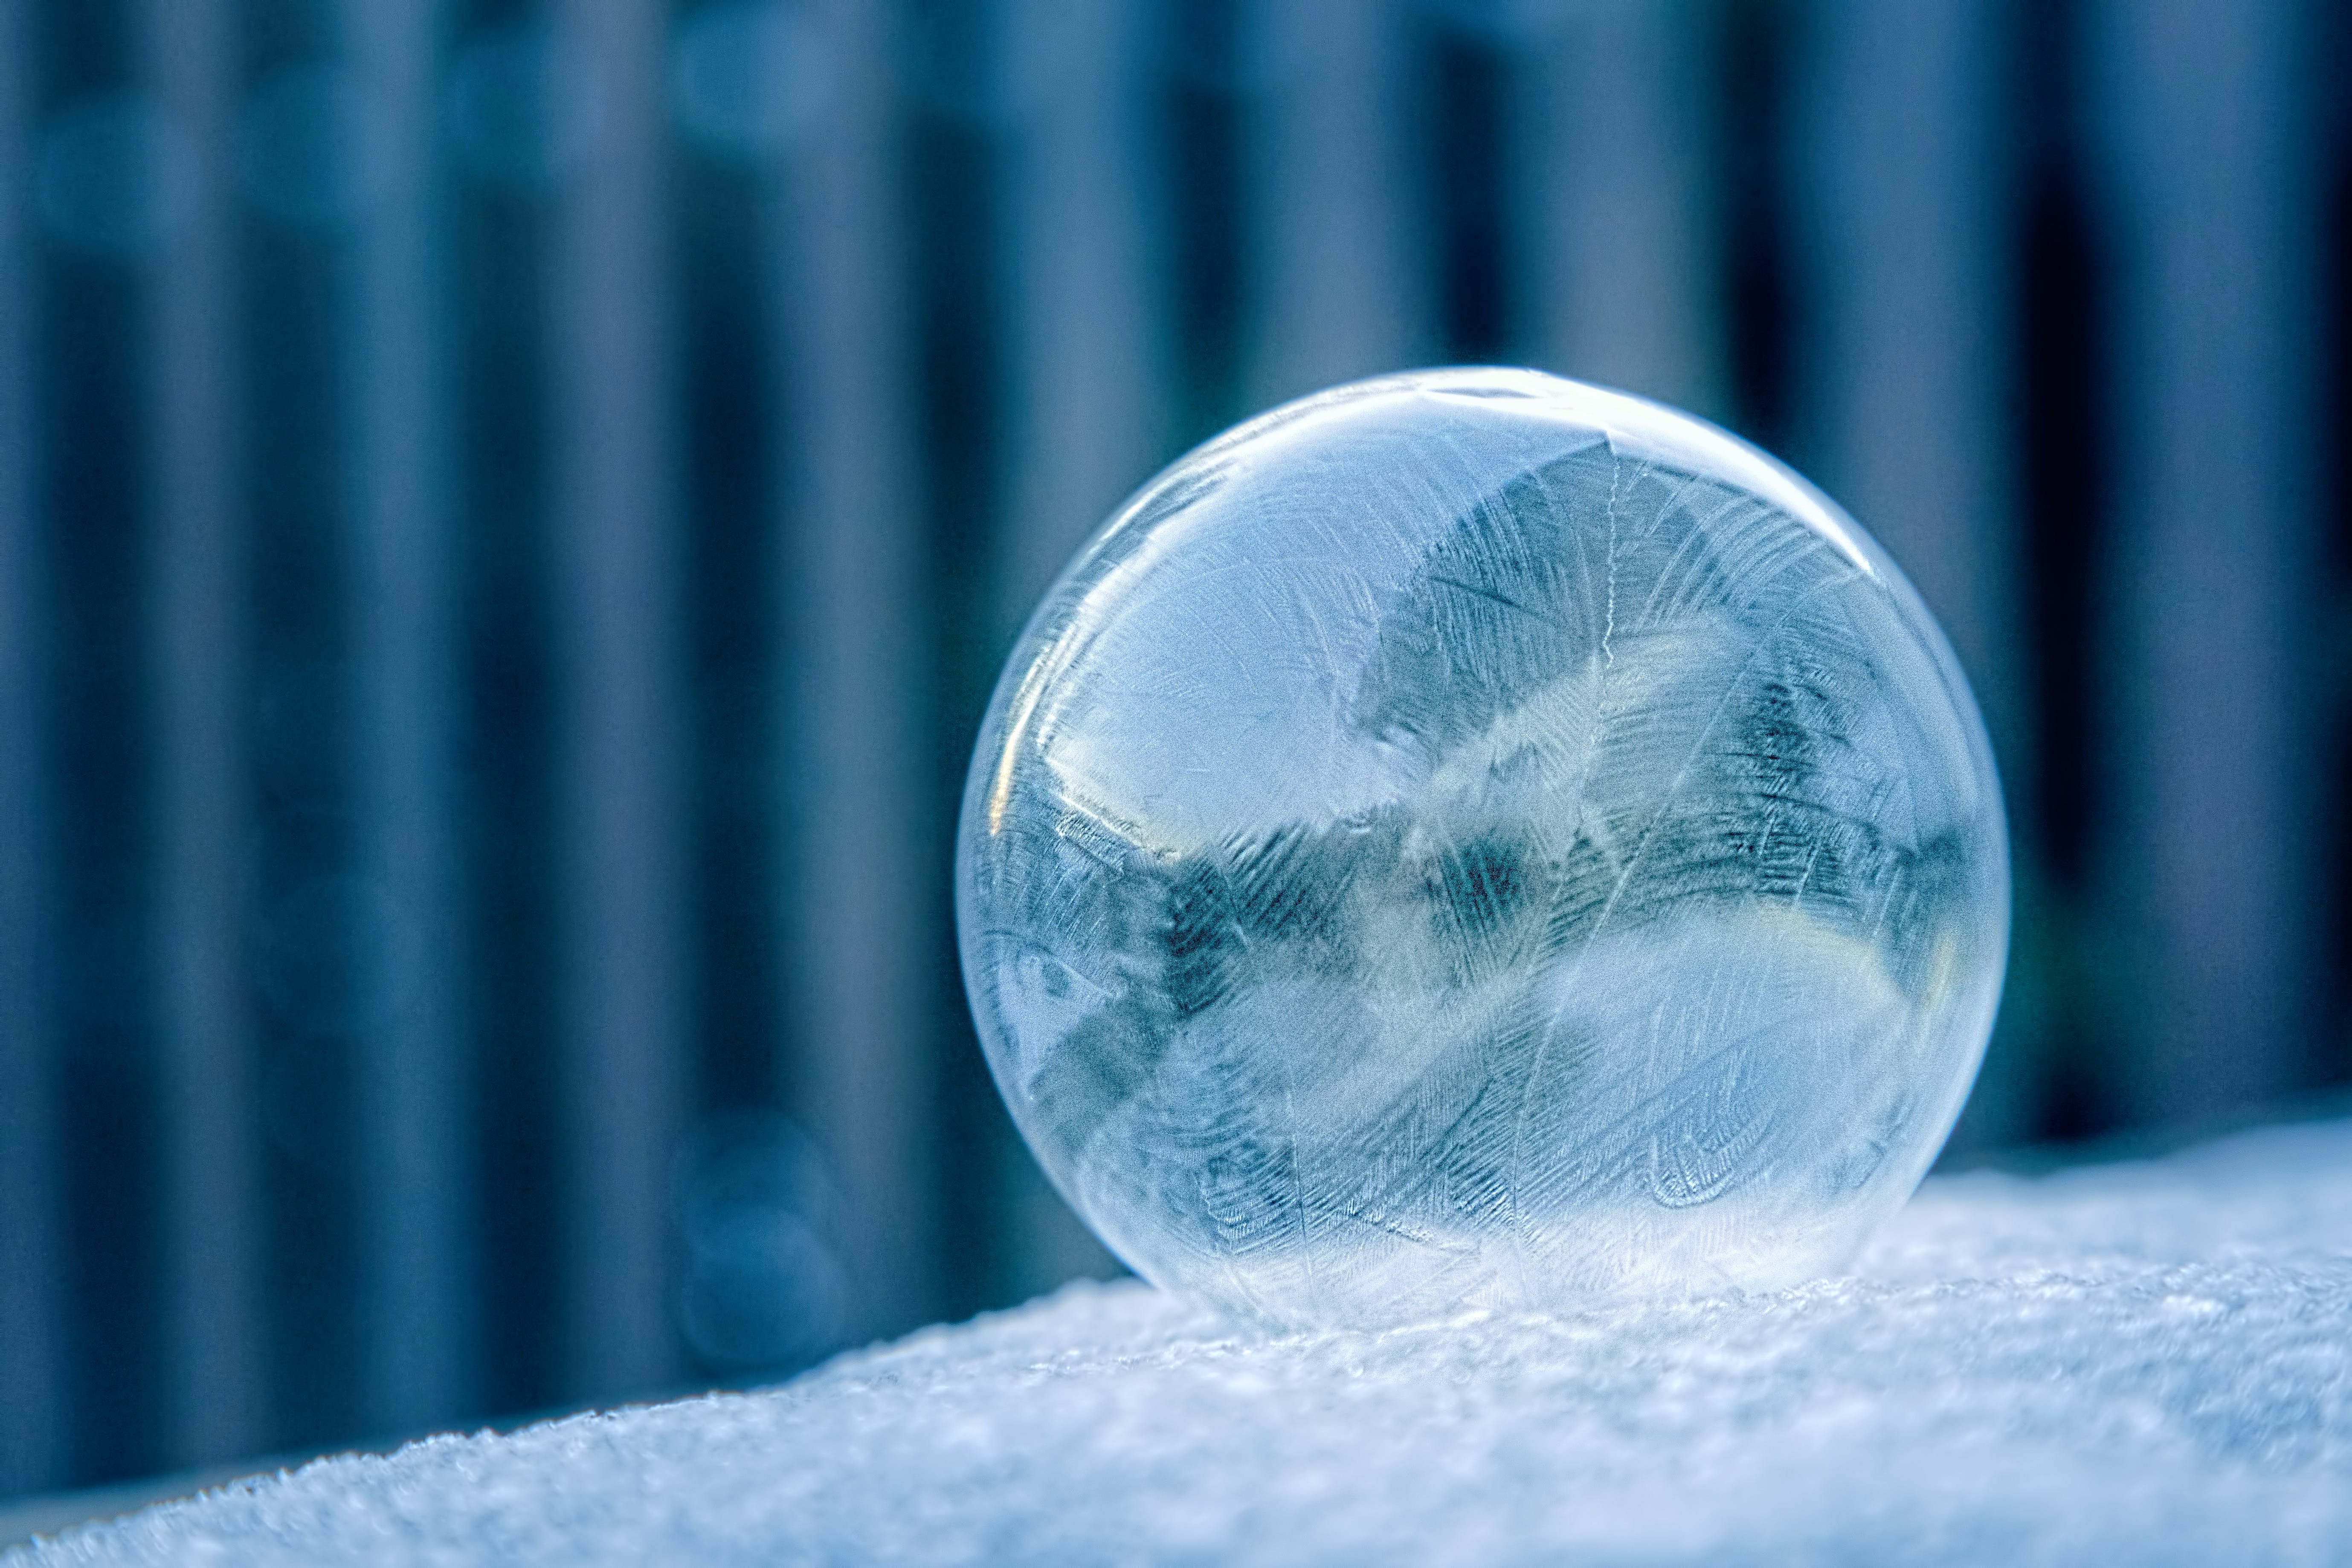 Glass Ball on White Surface